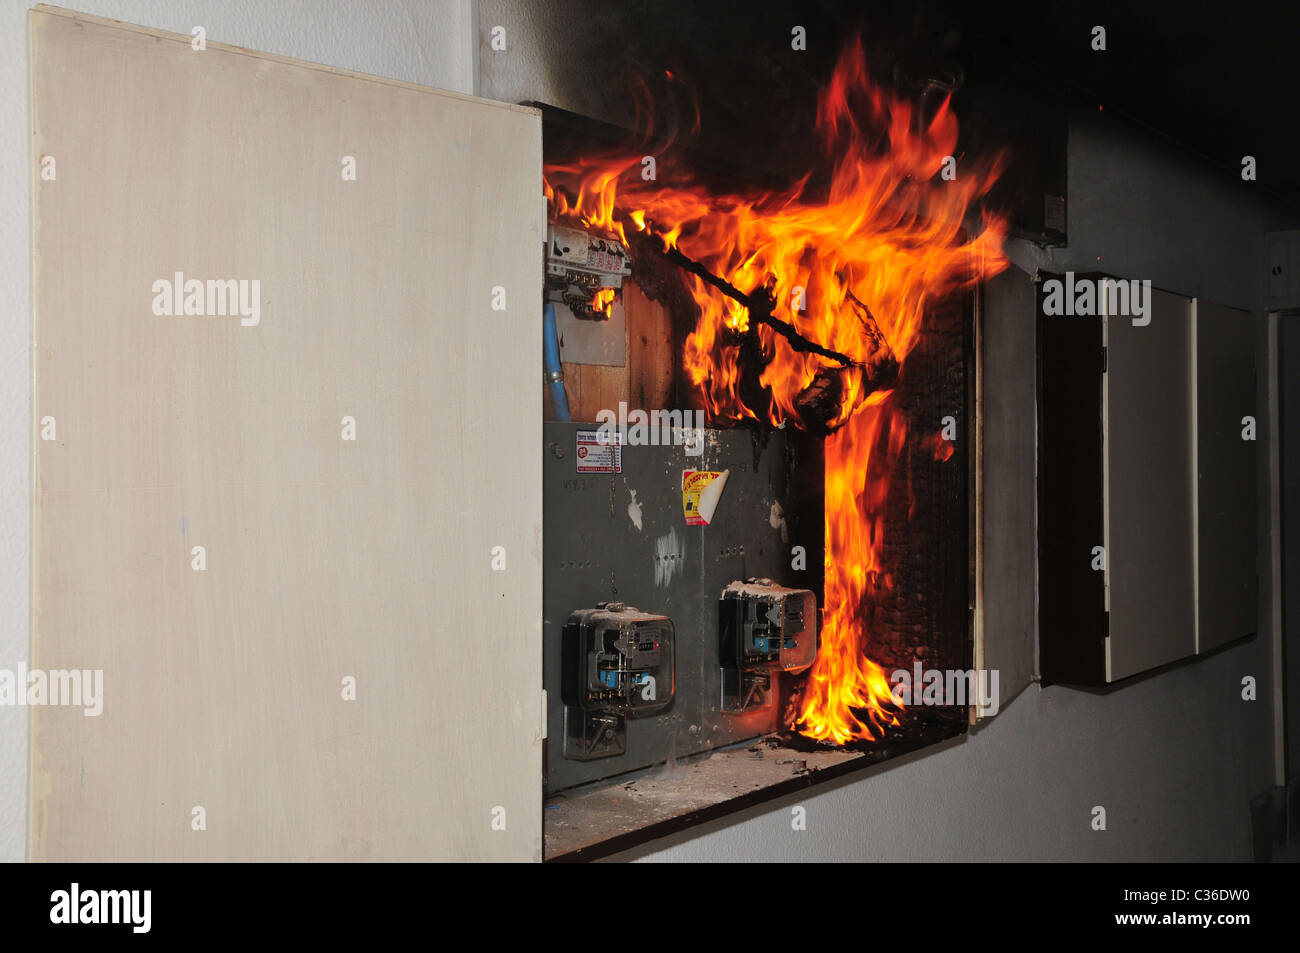 a fire broke out in a household electrical fuse box flames consumed Relay in Fuse Box Fires From Water a fire broke out in a household electrical fuse box flames consumed the board photographed in israel